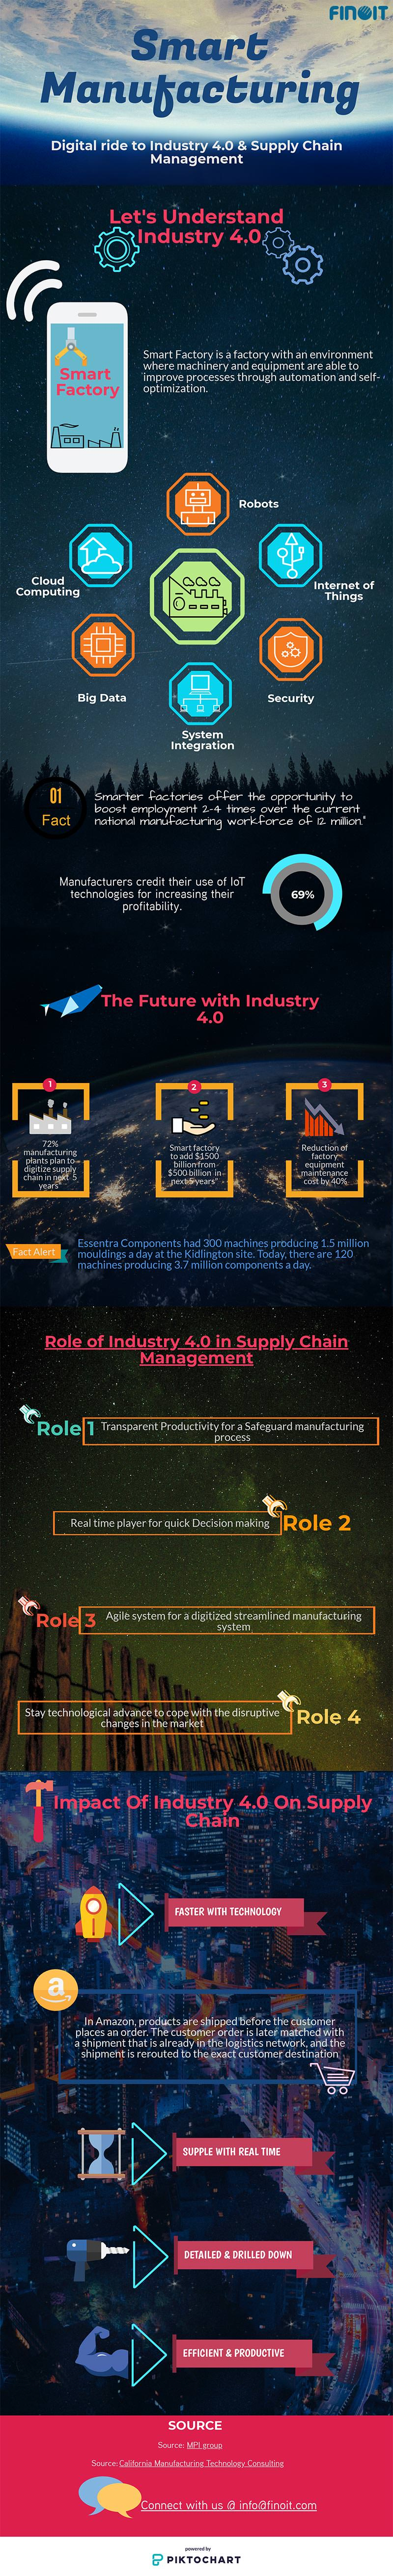 smart manufacturing infographic